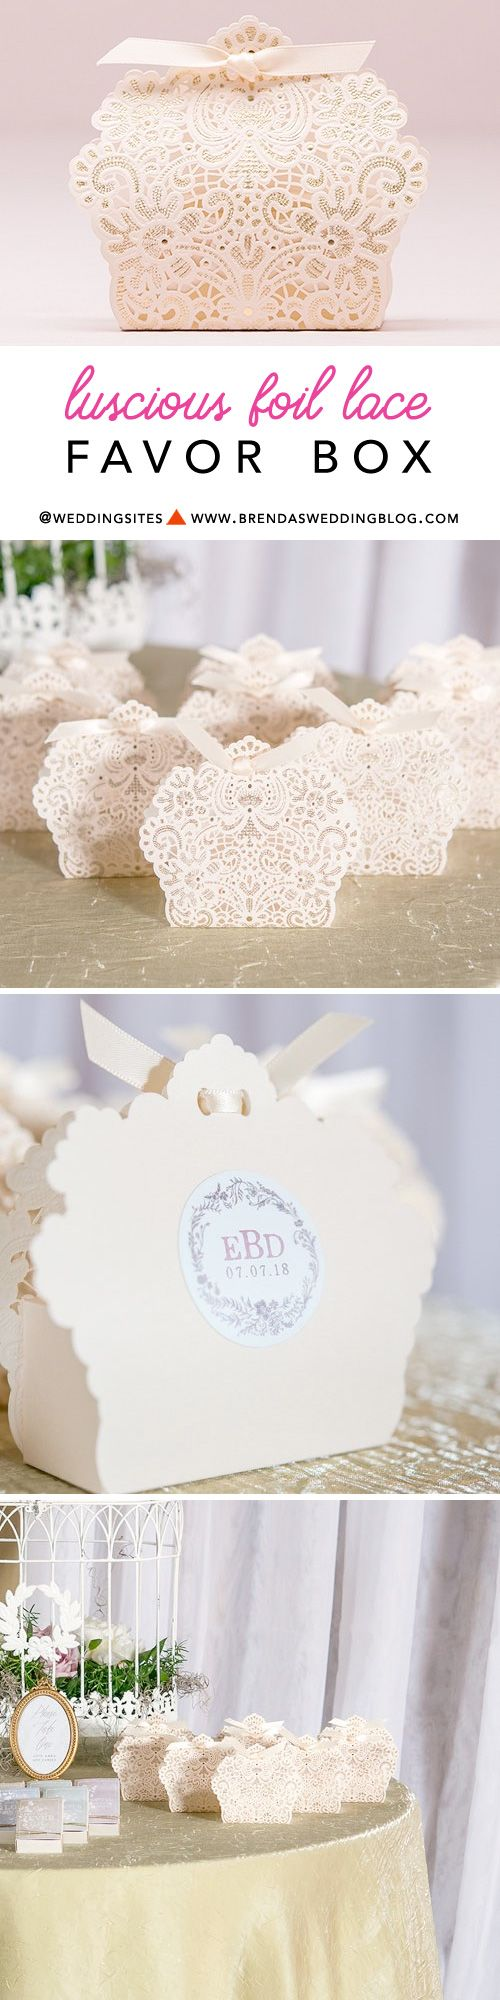 155 best Wedding + Party Favors and Gifts images on Pinterest ...